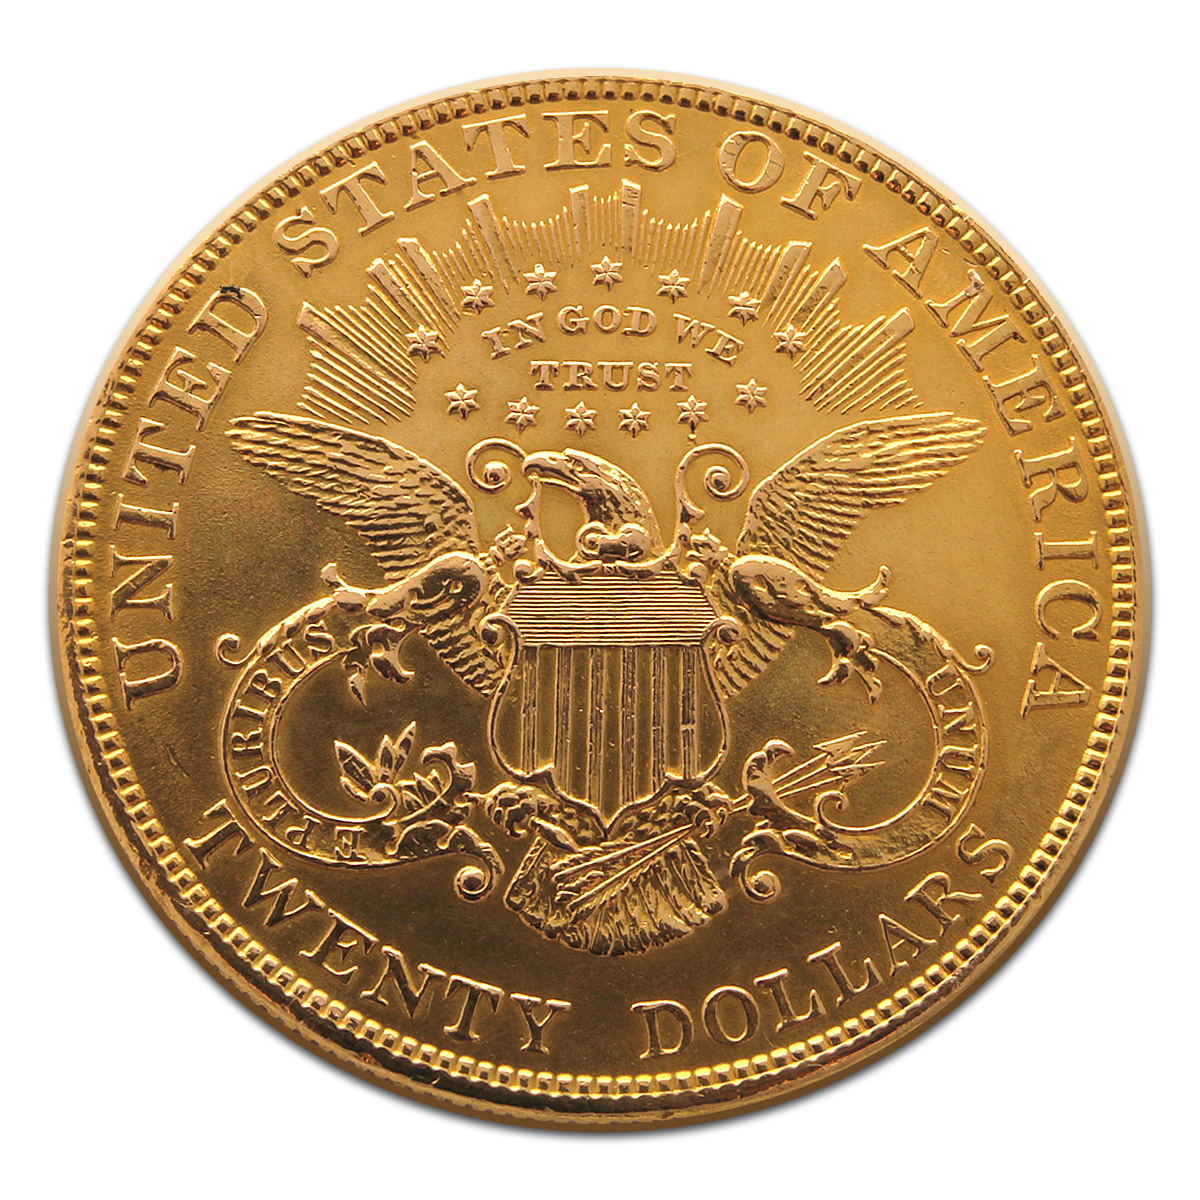 20 Double Eagle Liberty Coin Gold Bullion Co